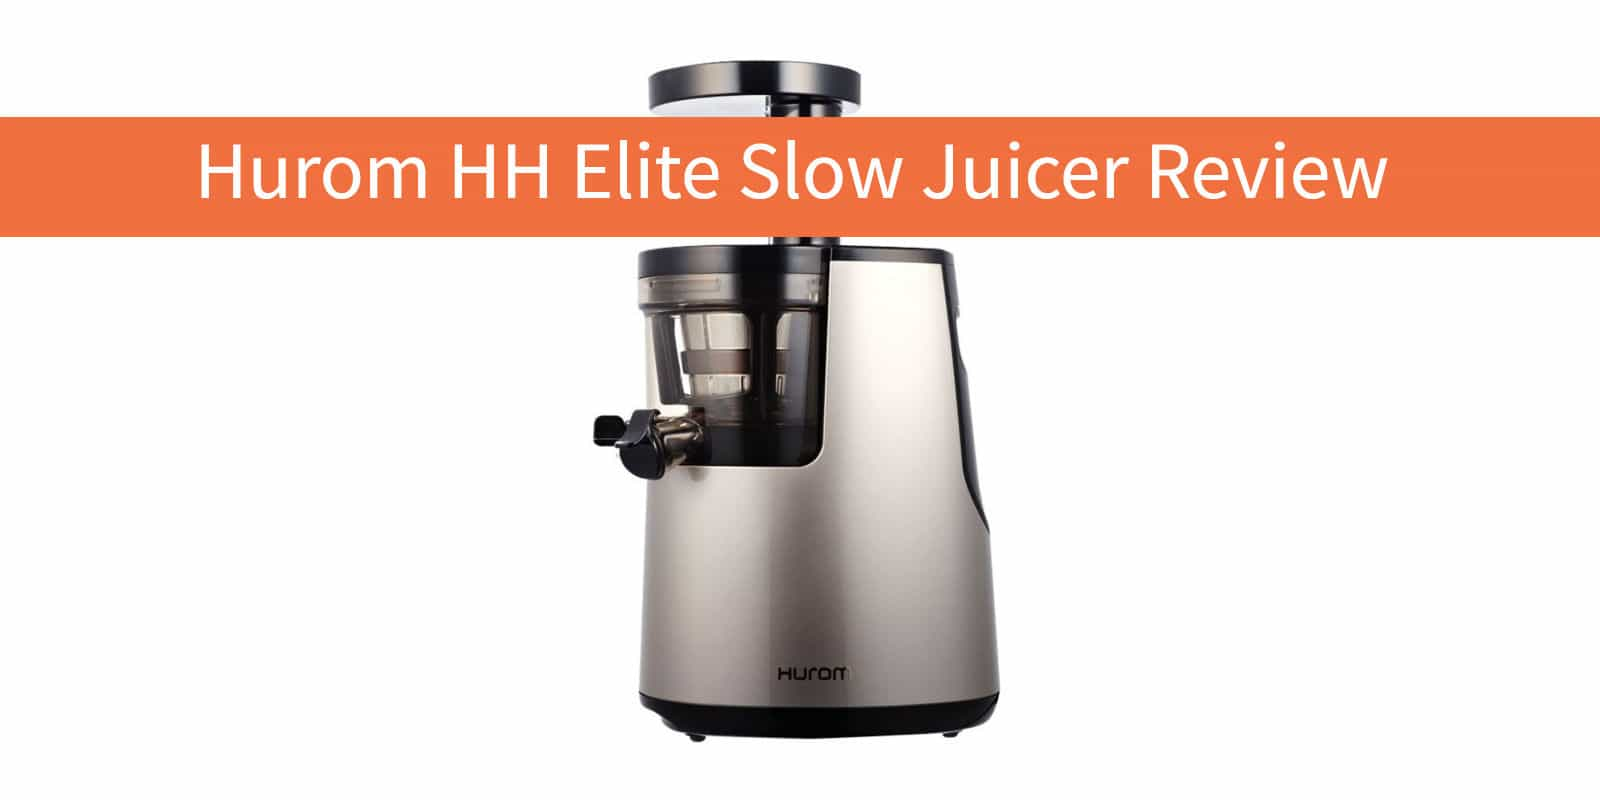 Slow Juicer Reviews 2017 : Hurom HH Elite Slow Juicer Review (2018) vegByte